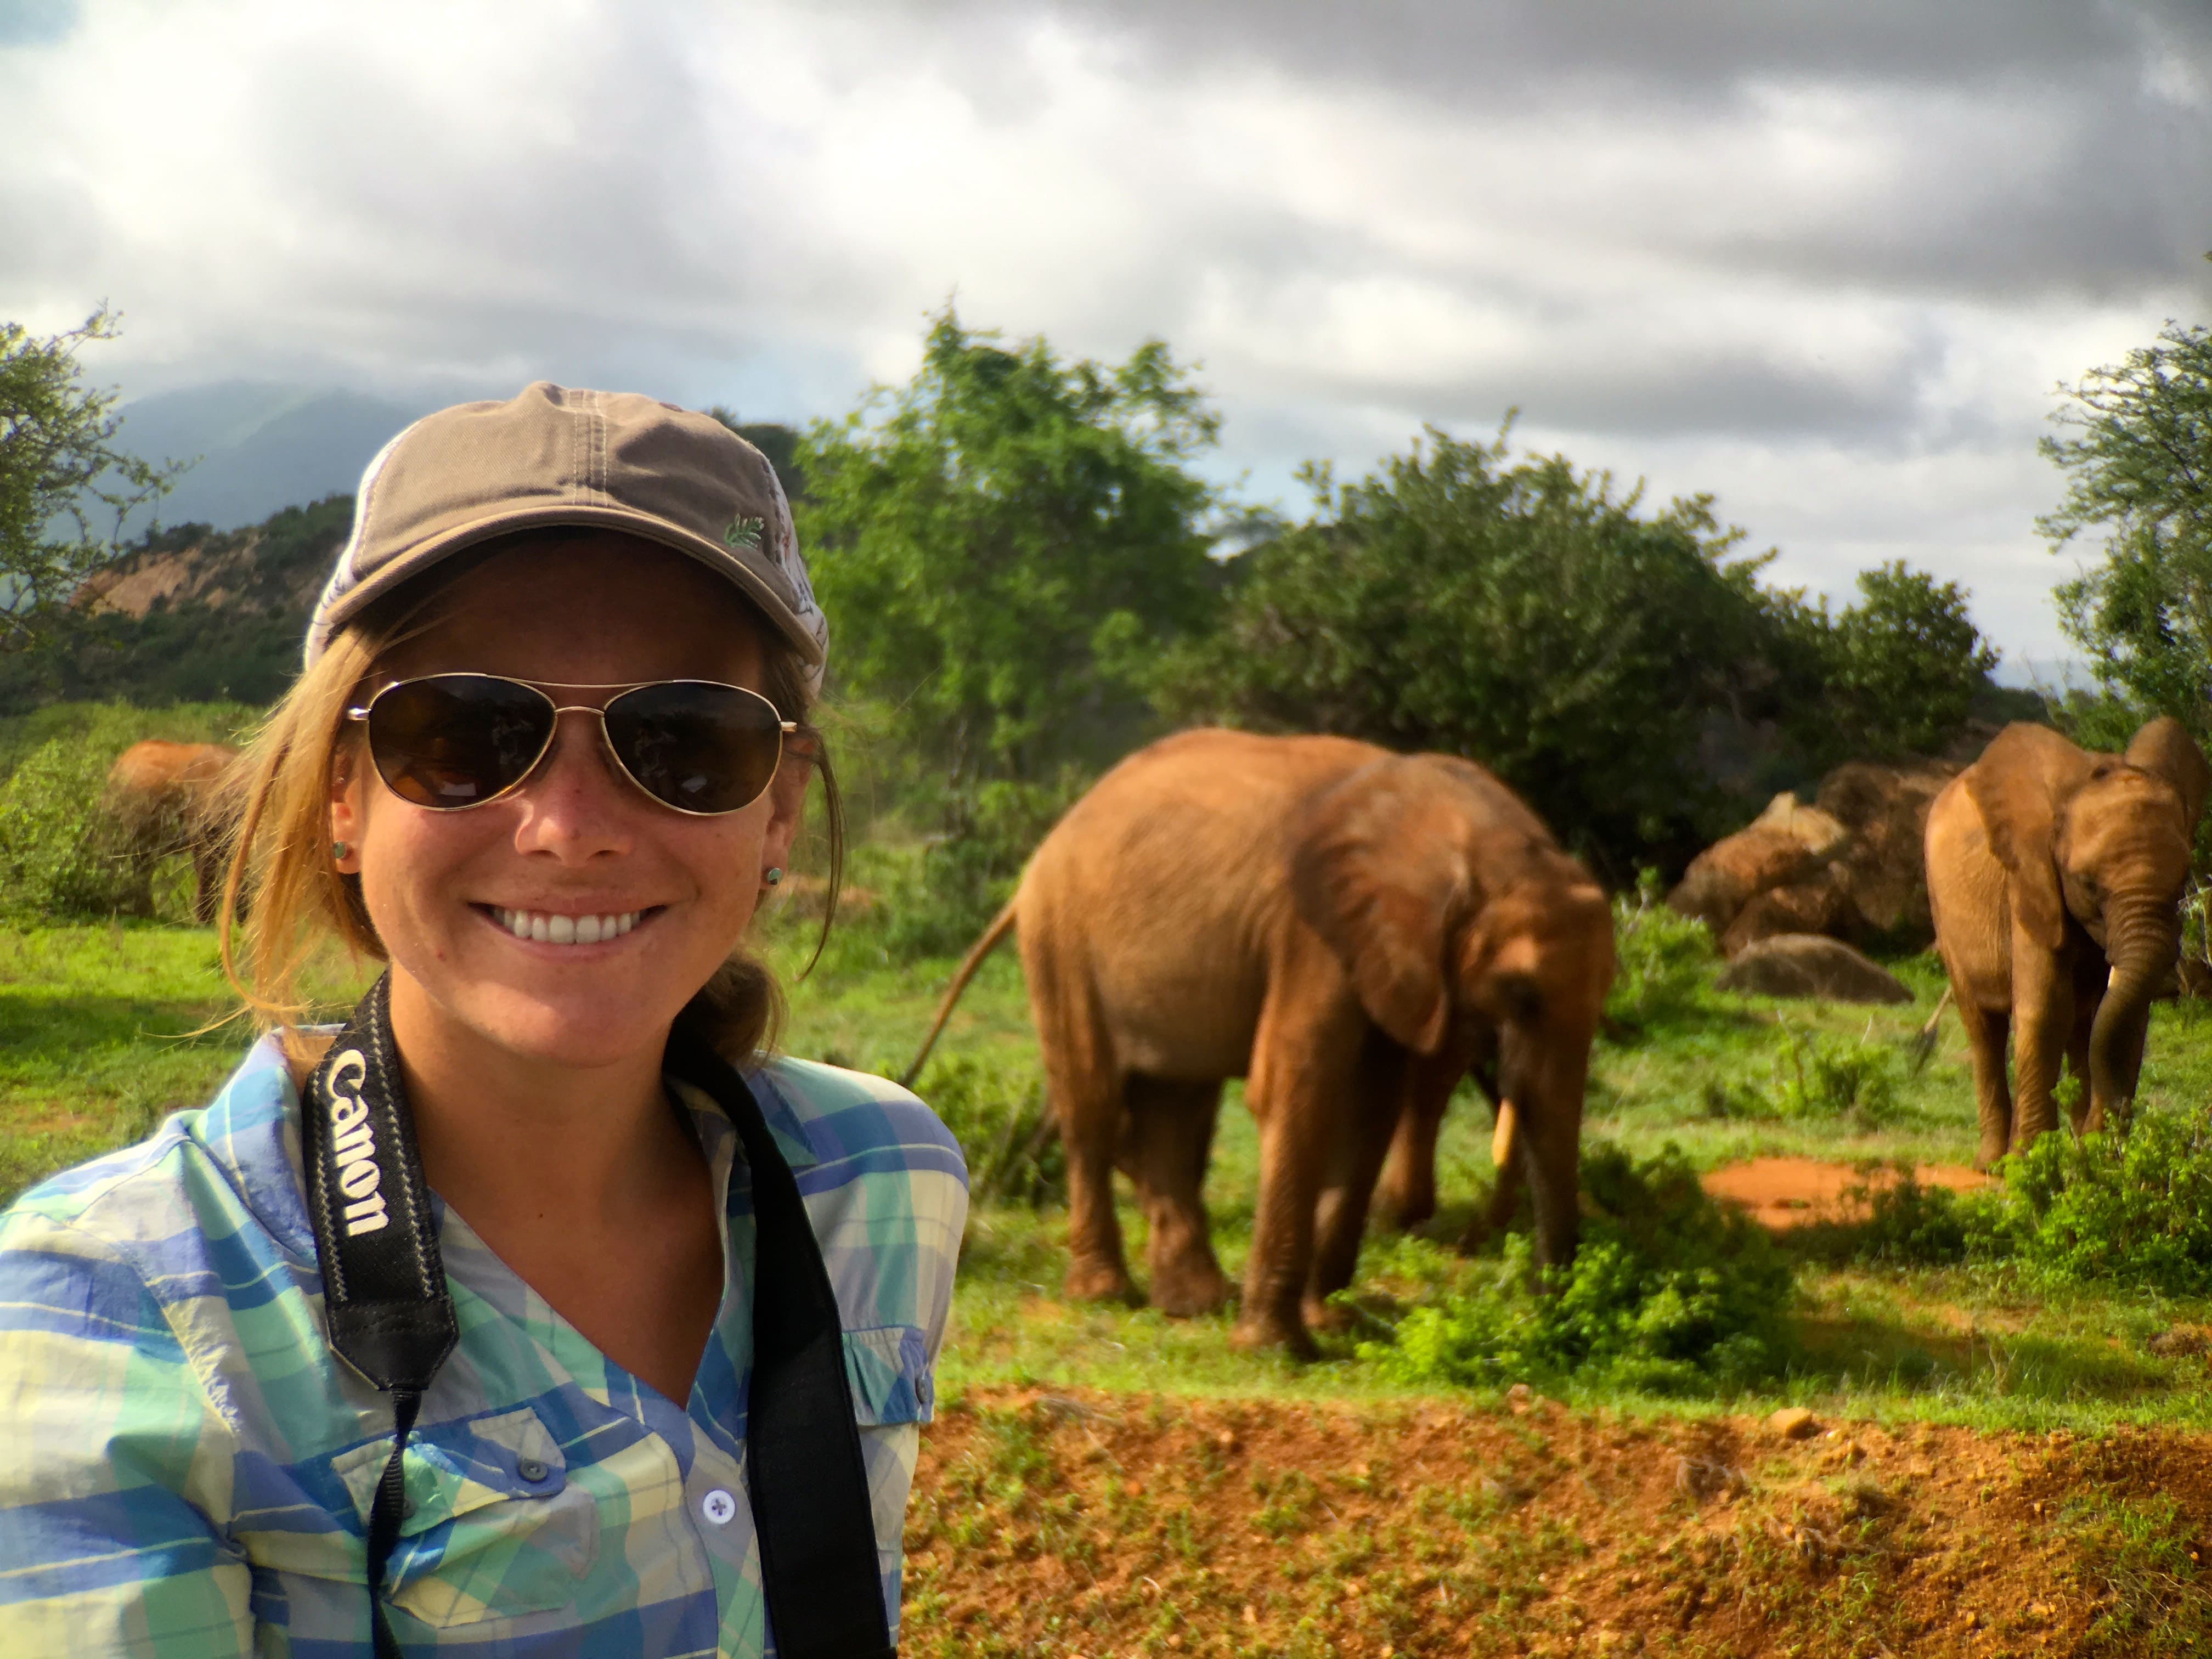 Trips into the park with George to observe elephants and their foraging behaviour.